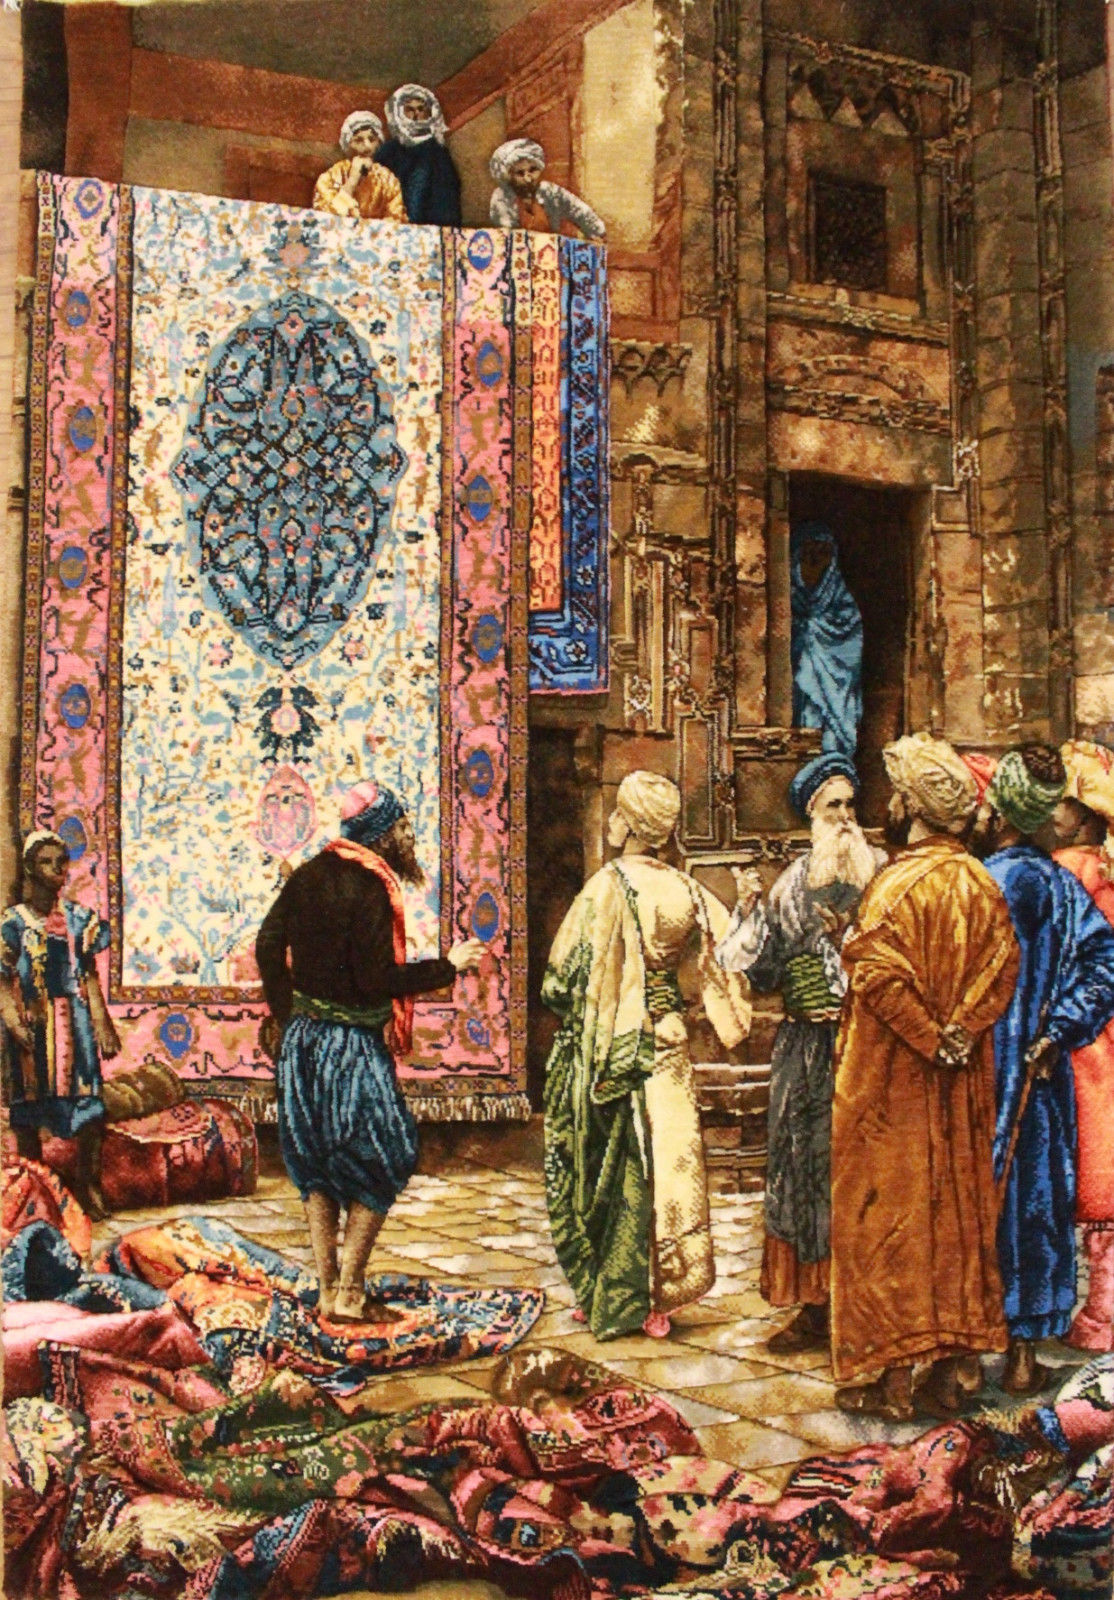 2'3″W x 3'2″H Handmade Wool and Silk THE CARPET MERCHANT by Jean Leon Gerome Persian Tableau Rug Tapestry Wall Hanging 12980818